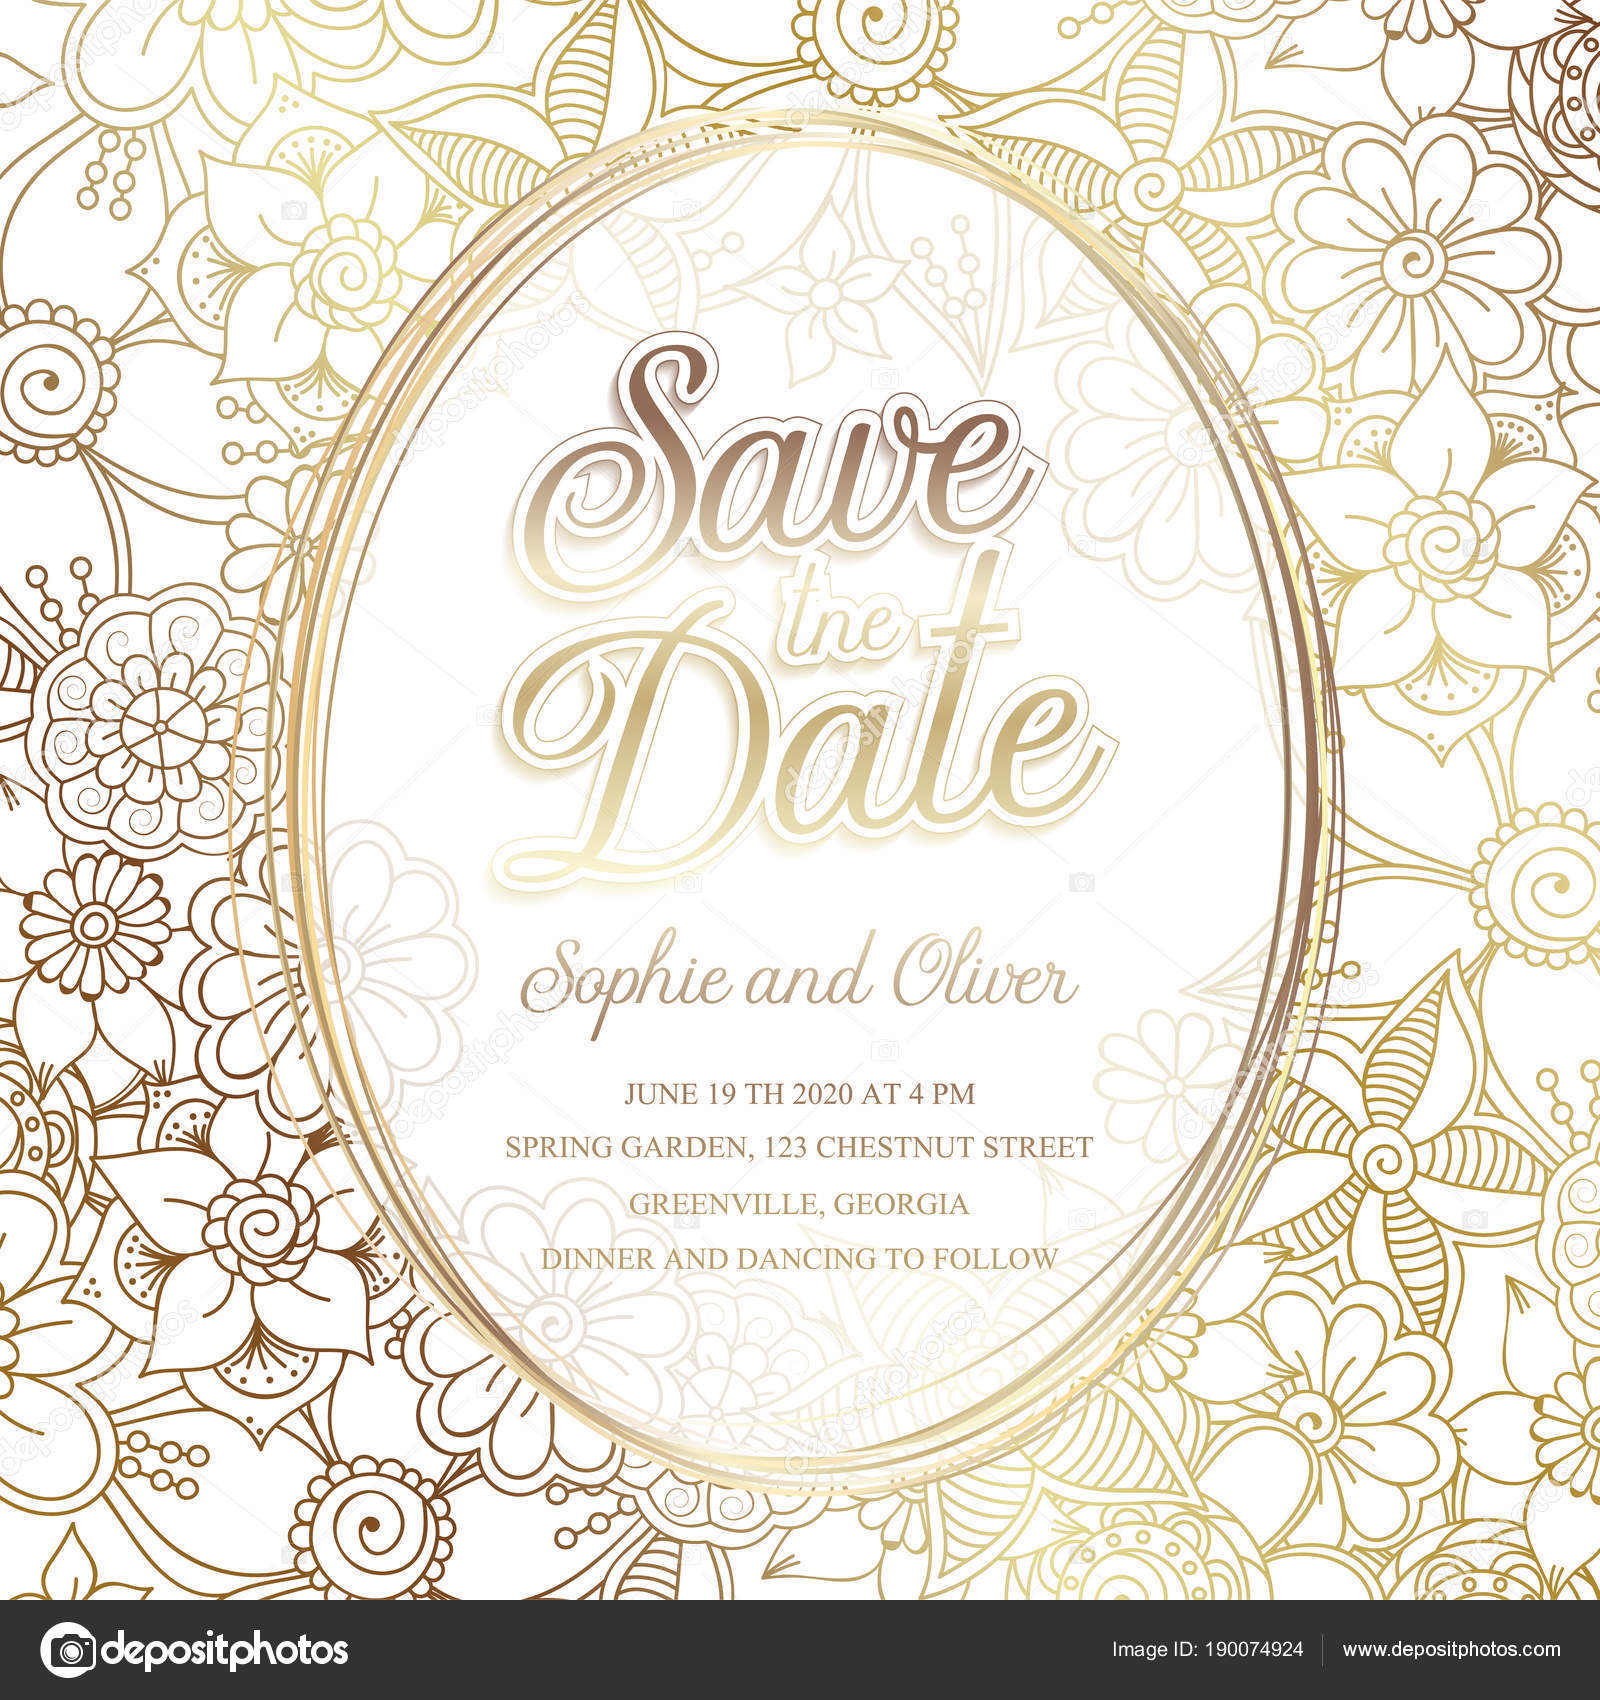 Floral wedding invitation elegant invite card vector design floral wedding invitation elegant invite card vector design vetores de stock stopboris Image collections